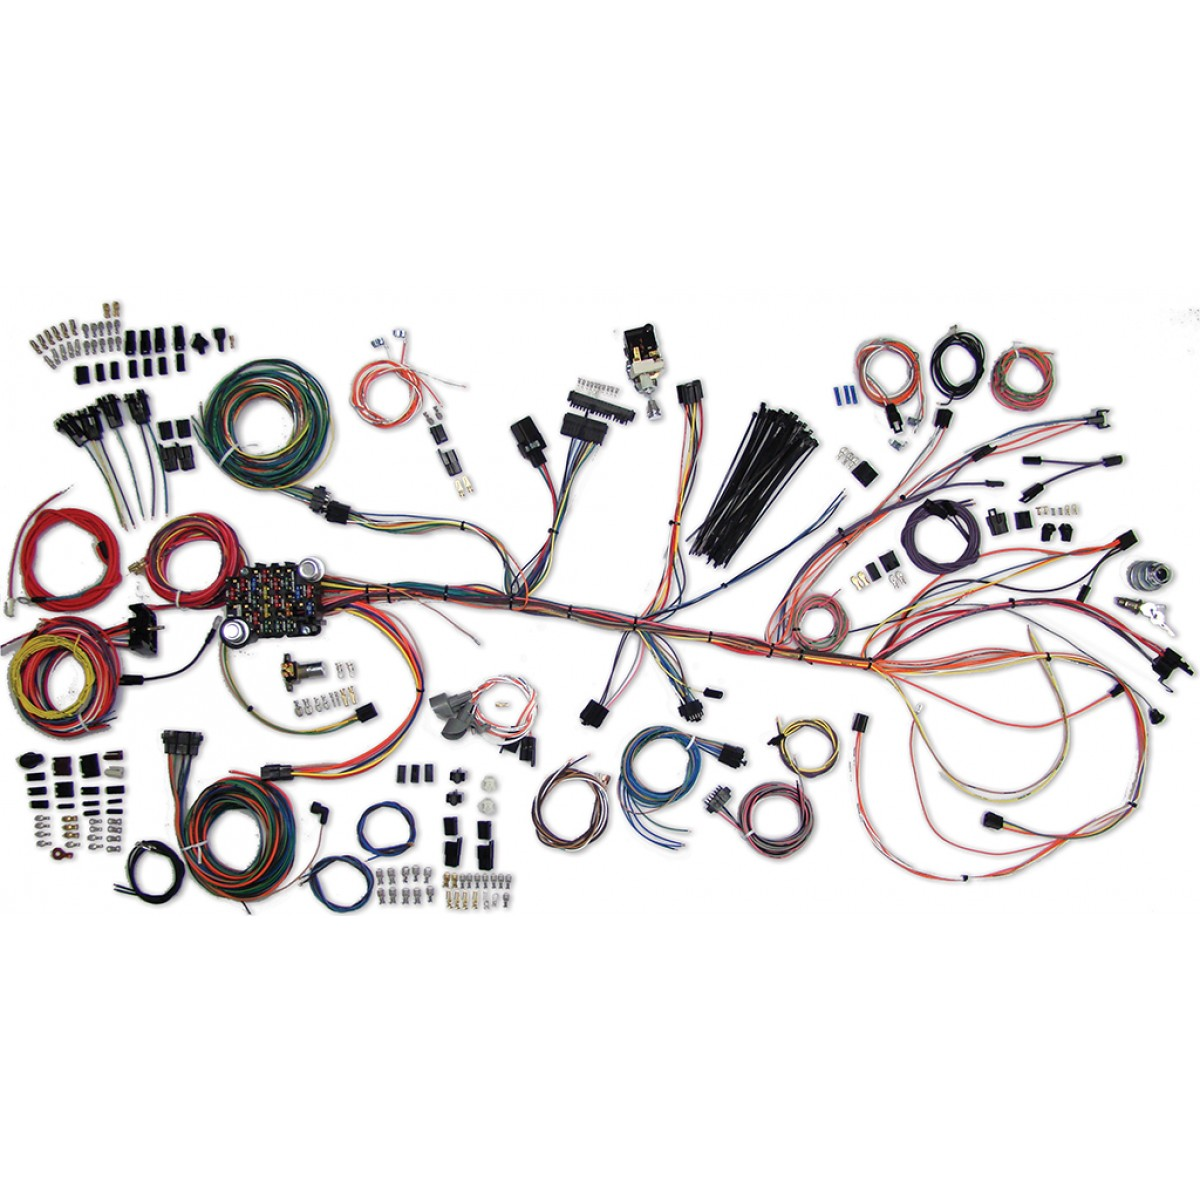 Complete Wiring Harness Kit - 1964-1967 Chevelle Part# 500981 on